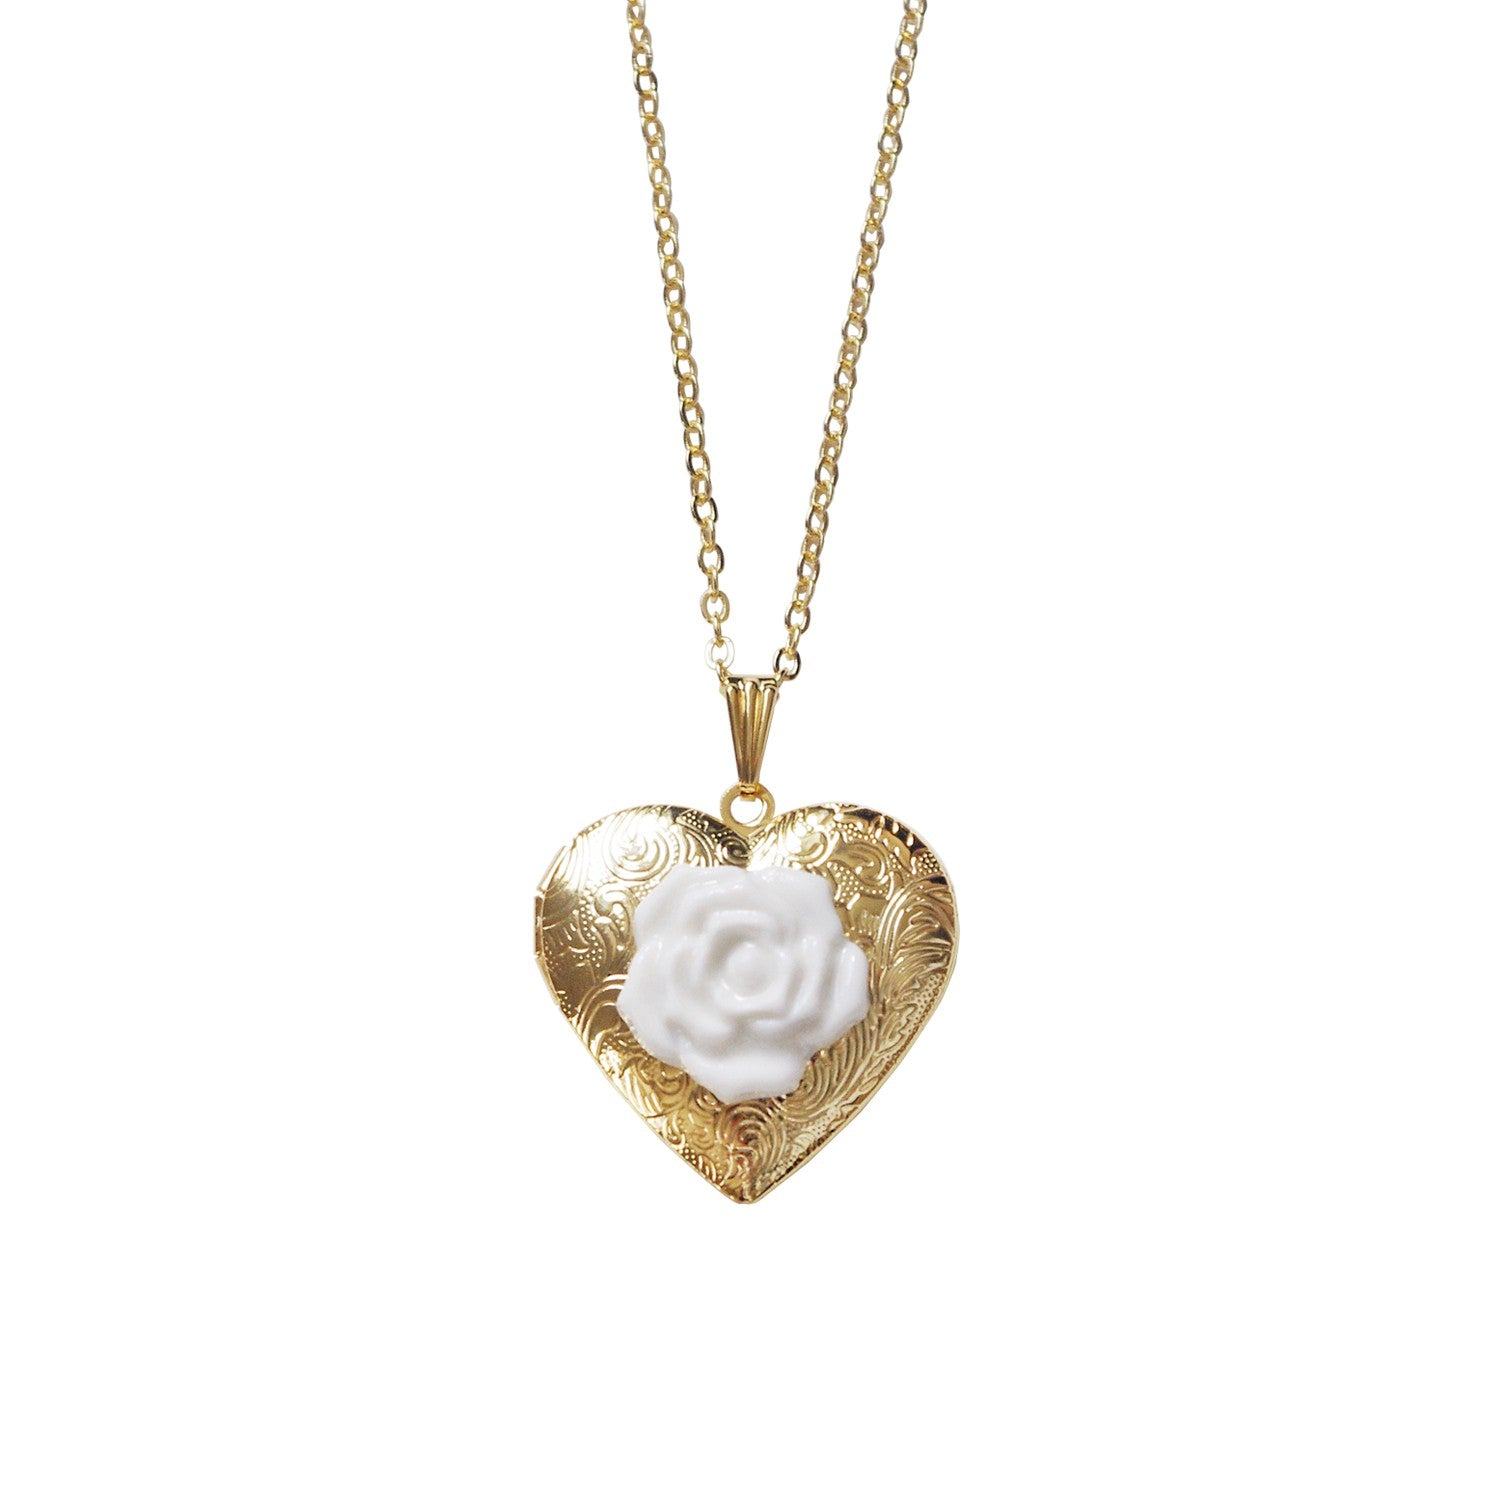 Classic Heart Locket With Porcelain Rose Pendant Necklace by POPORCELAIN on OOSTOR.com